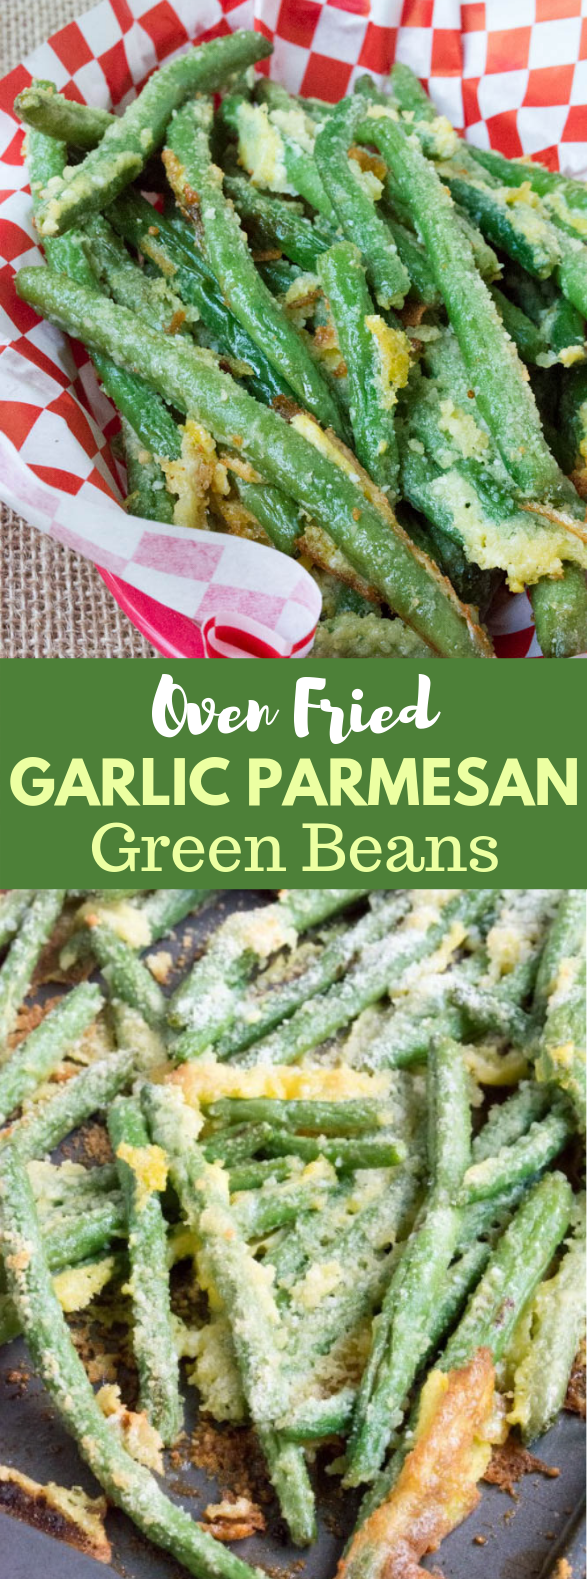 OVEN FRIED GARLIC PARMESAN GREEN BEANS #Keto #LowCarb